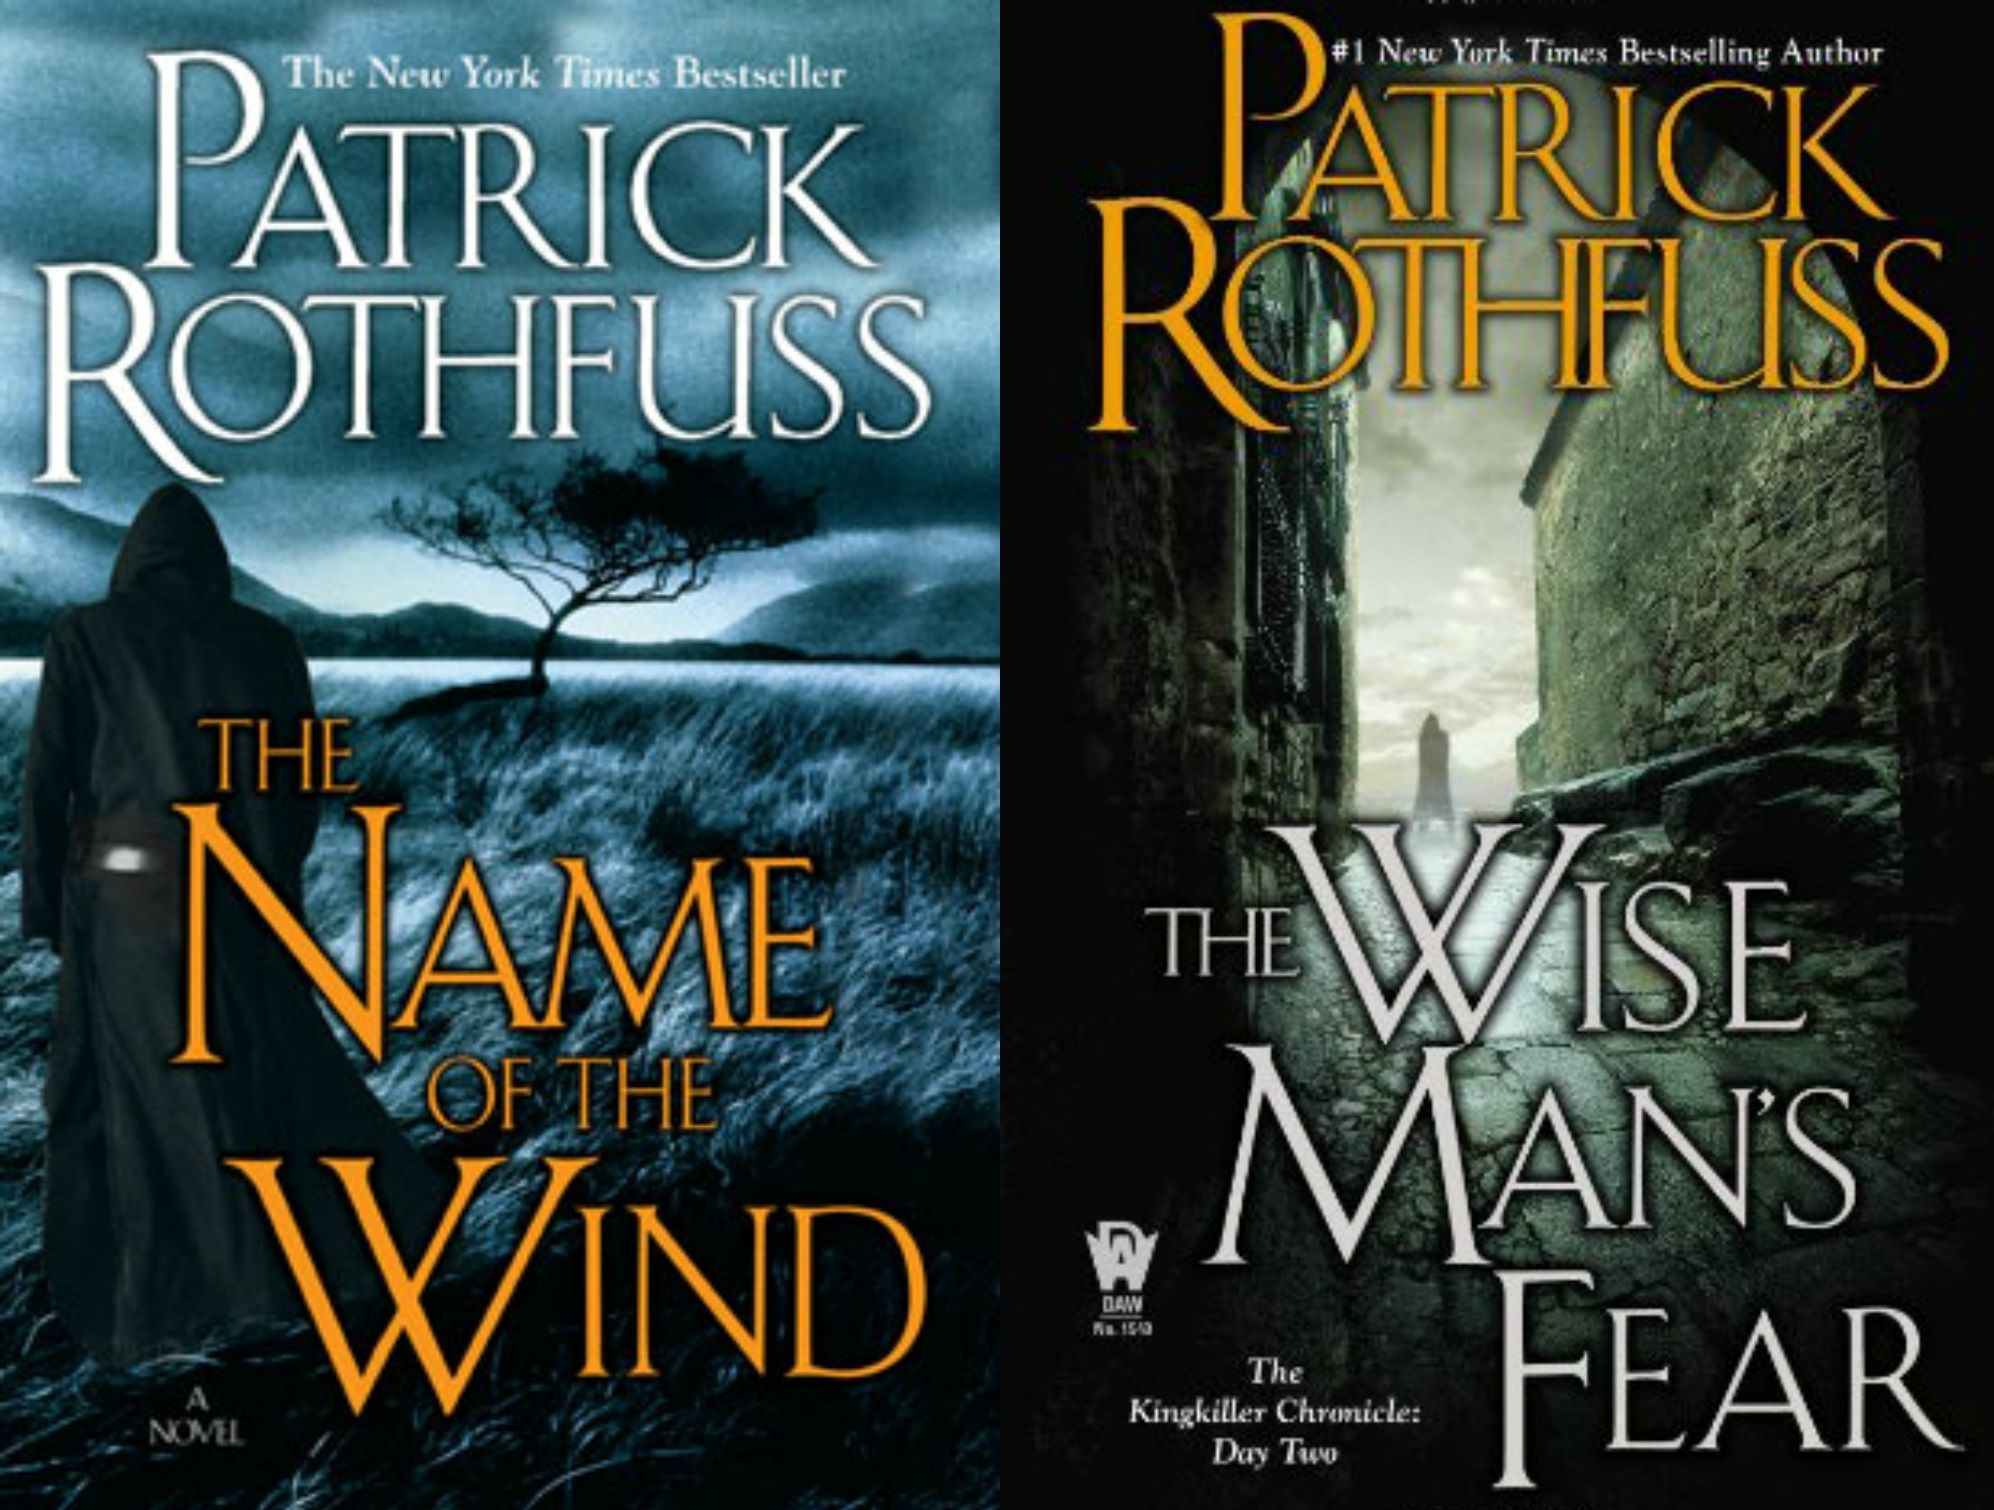 Nuevo Libro De Patrick Rothfuss The Kingkiller Chronicle Author Patrick Rothfuss Says Book